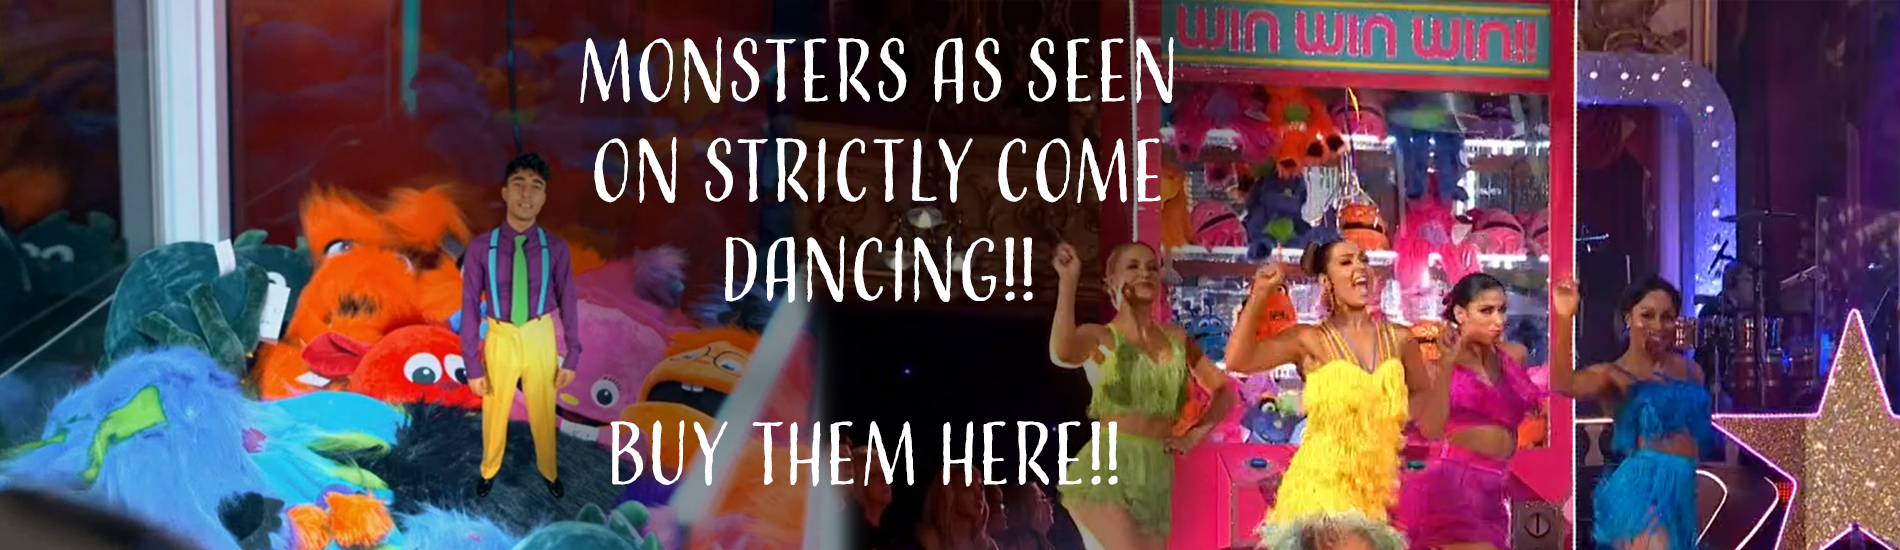 Strictly-monsters